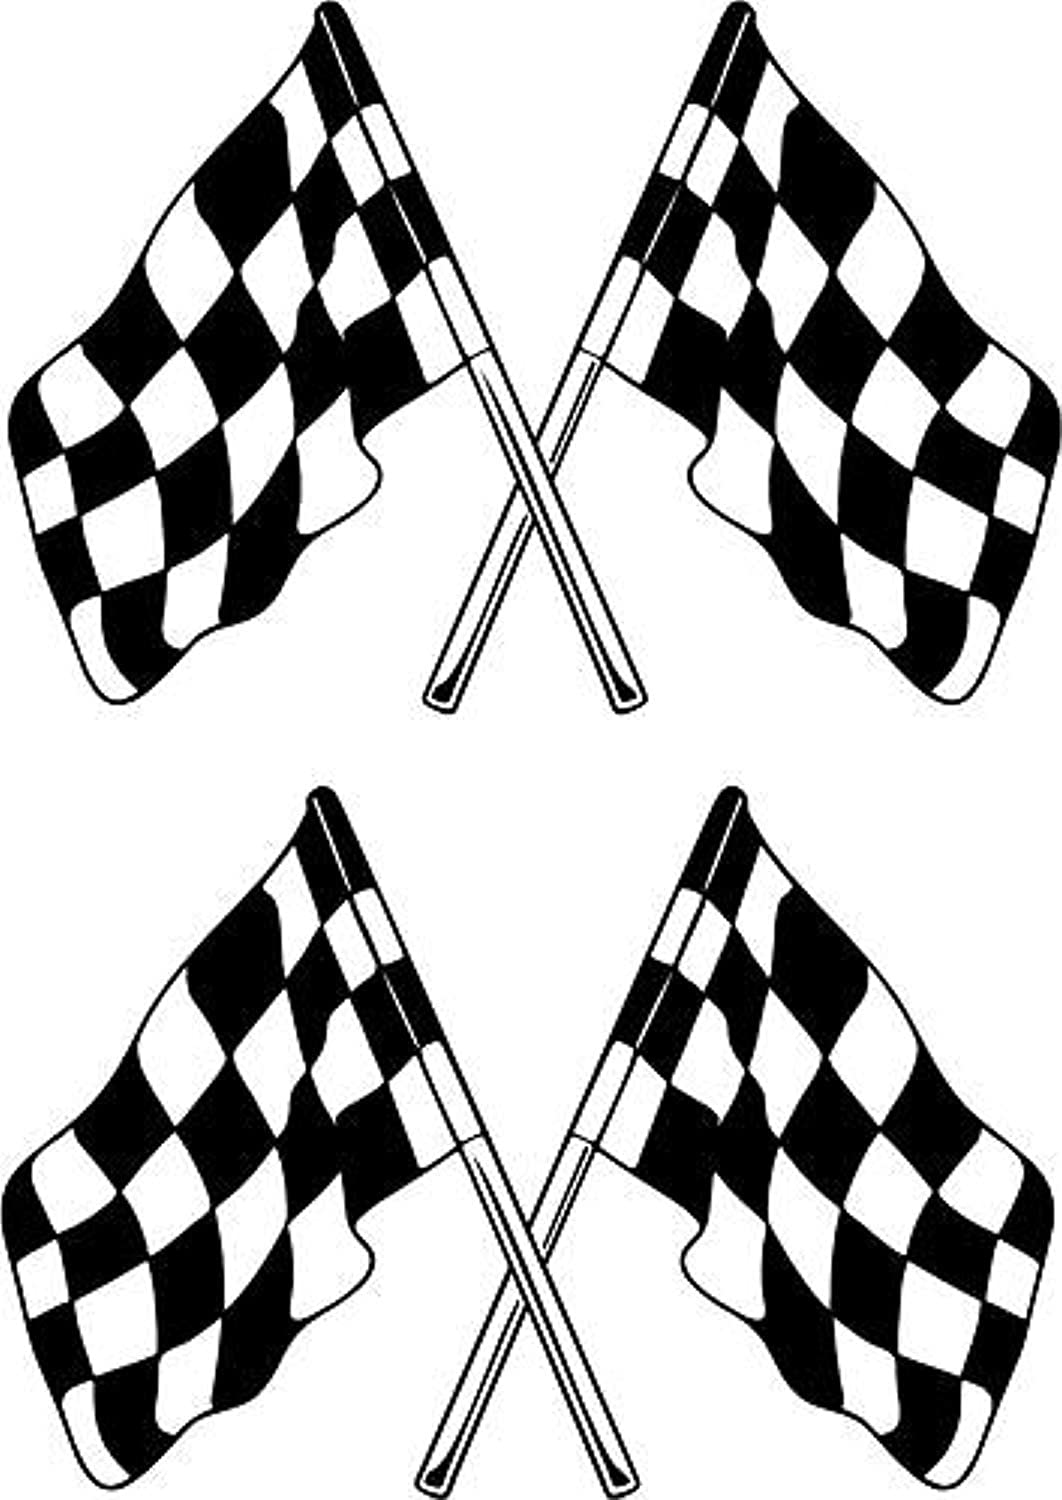 LightningSigns Chequered Flags Rally Motorsport Stock Car Stickers Wall Decals Decor Vinyl Sticker SK9028